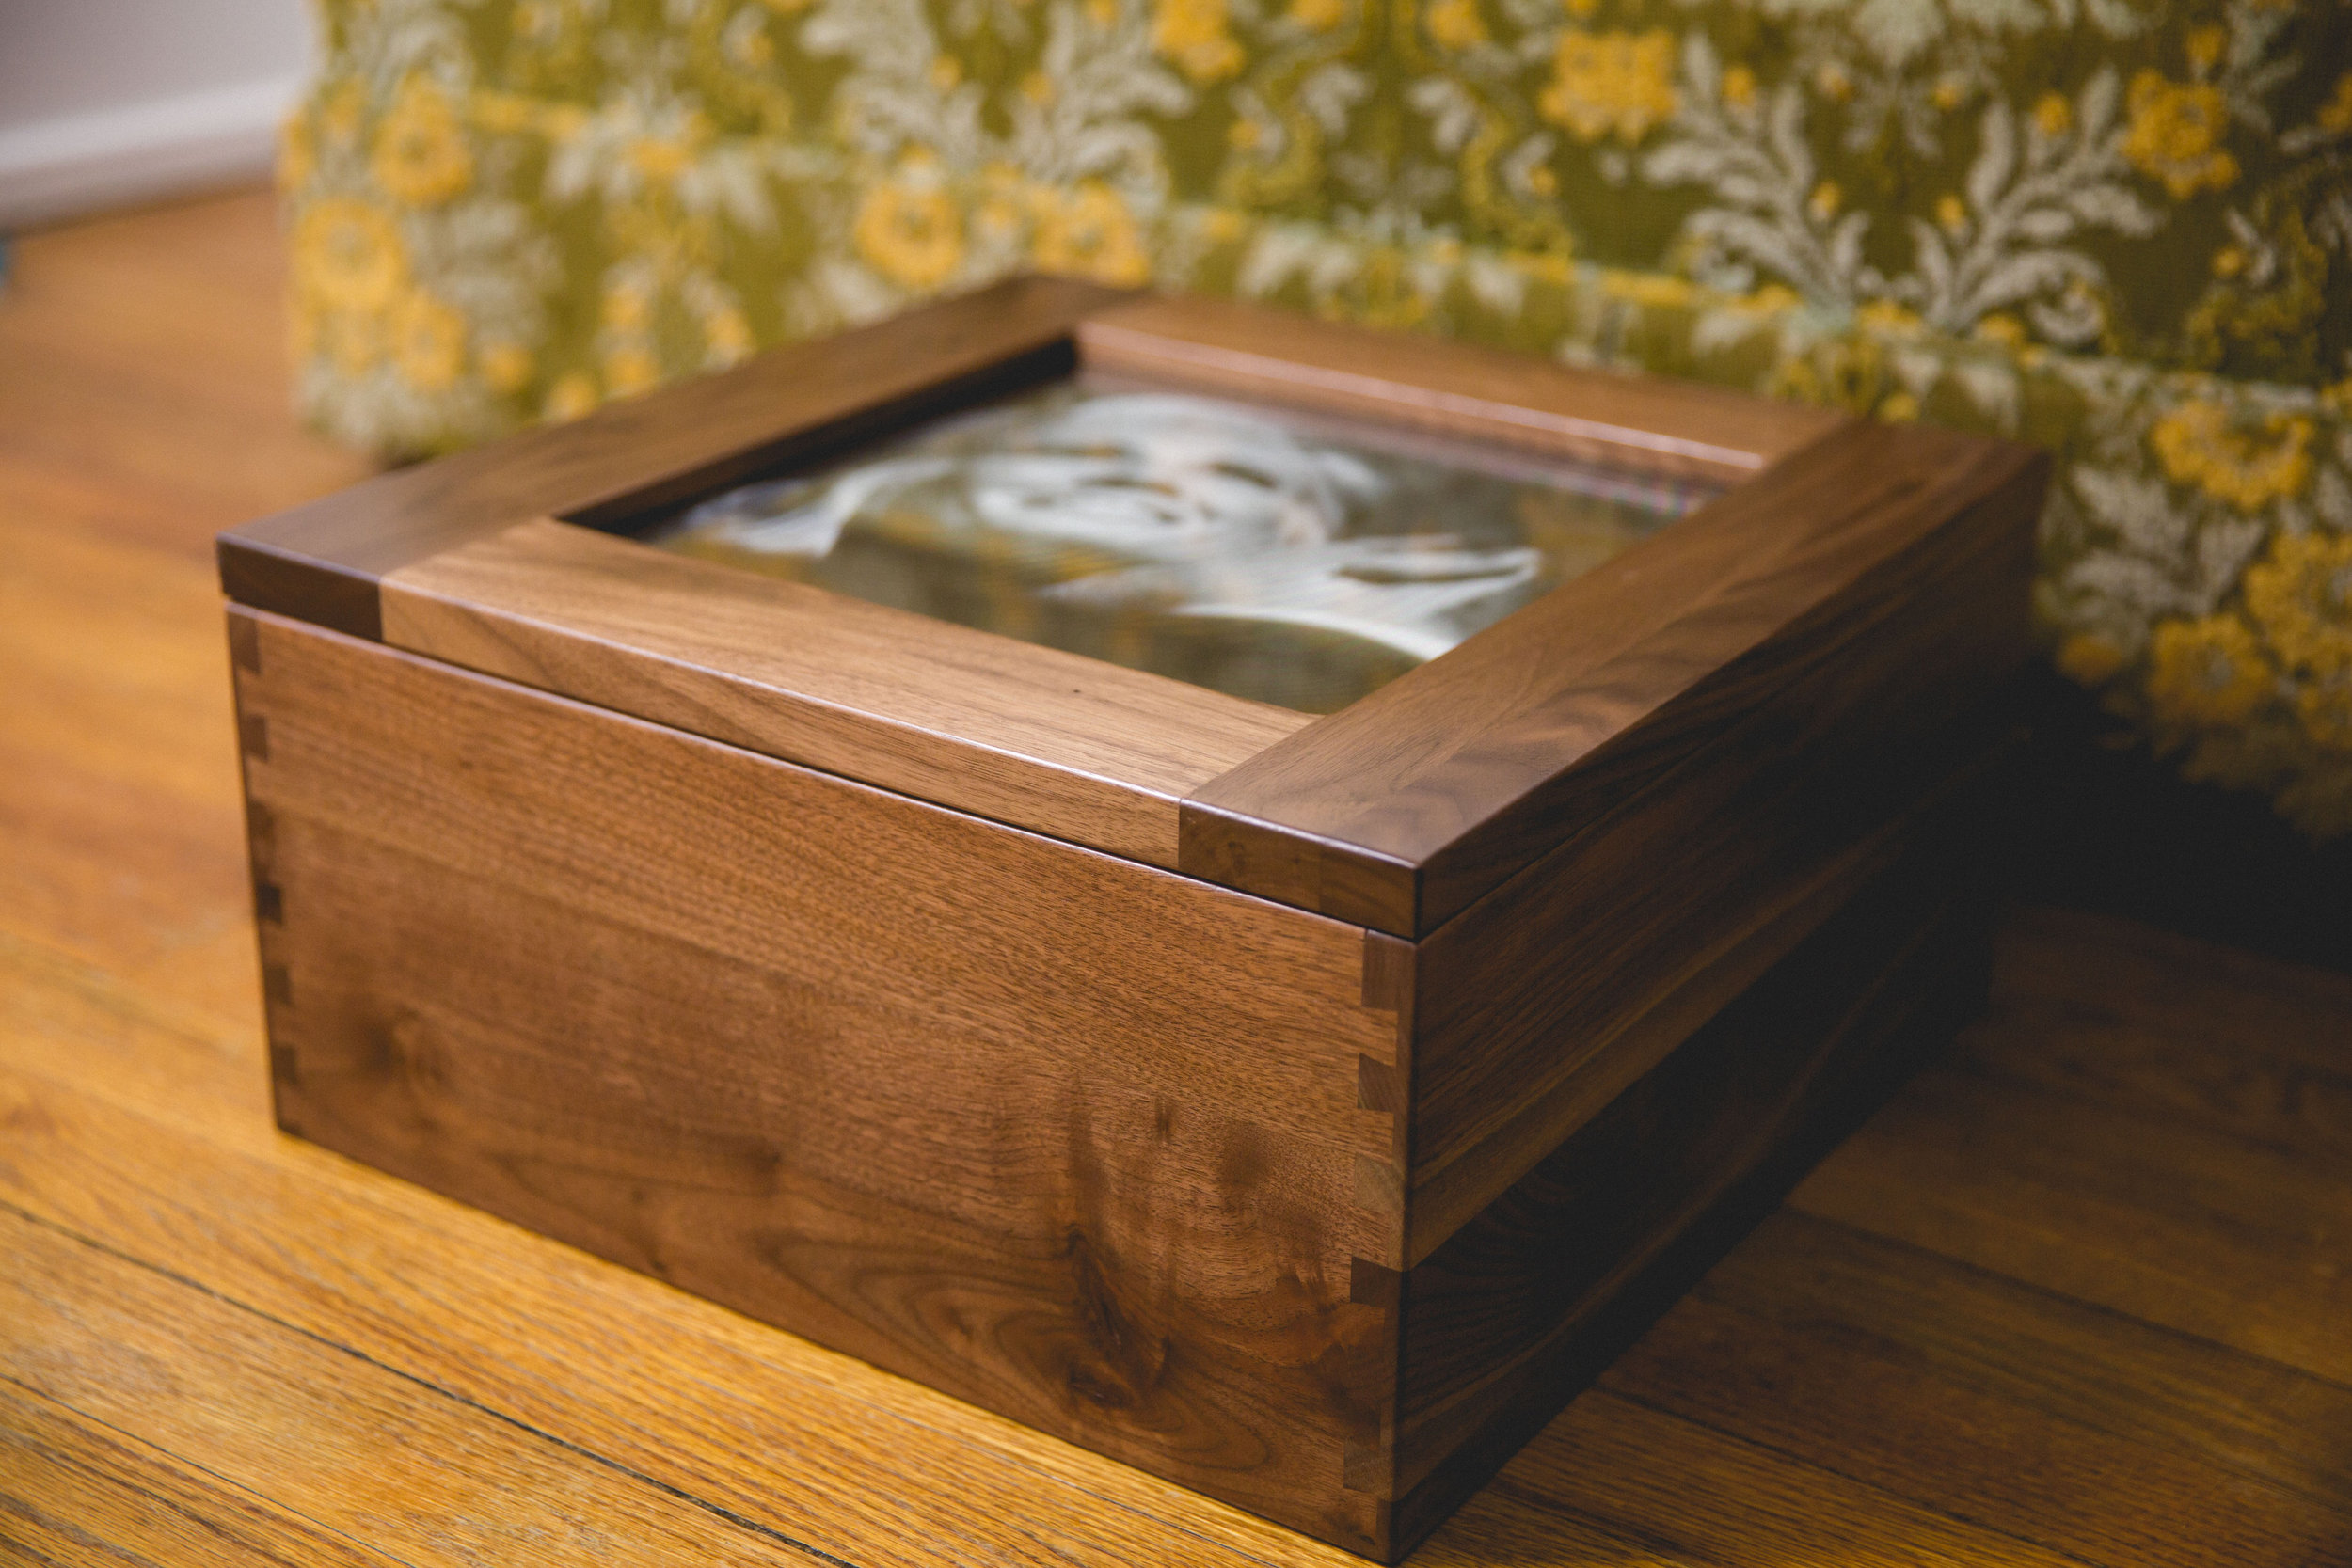 The Heirloom Box — Inheritance in Walnut (Image by H.H.Boogie)